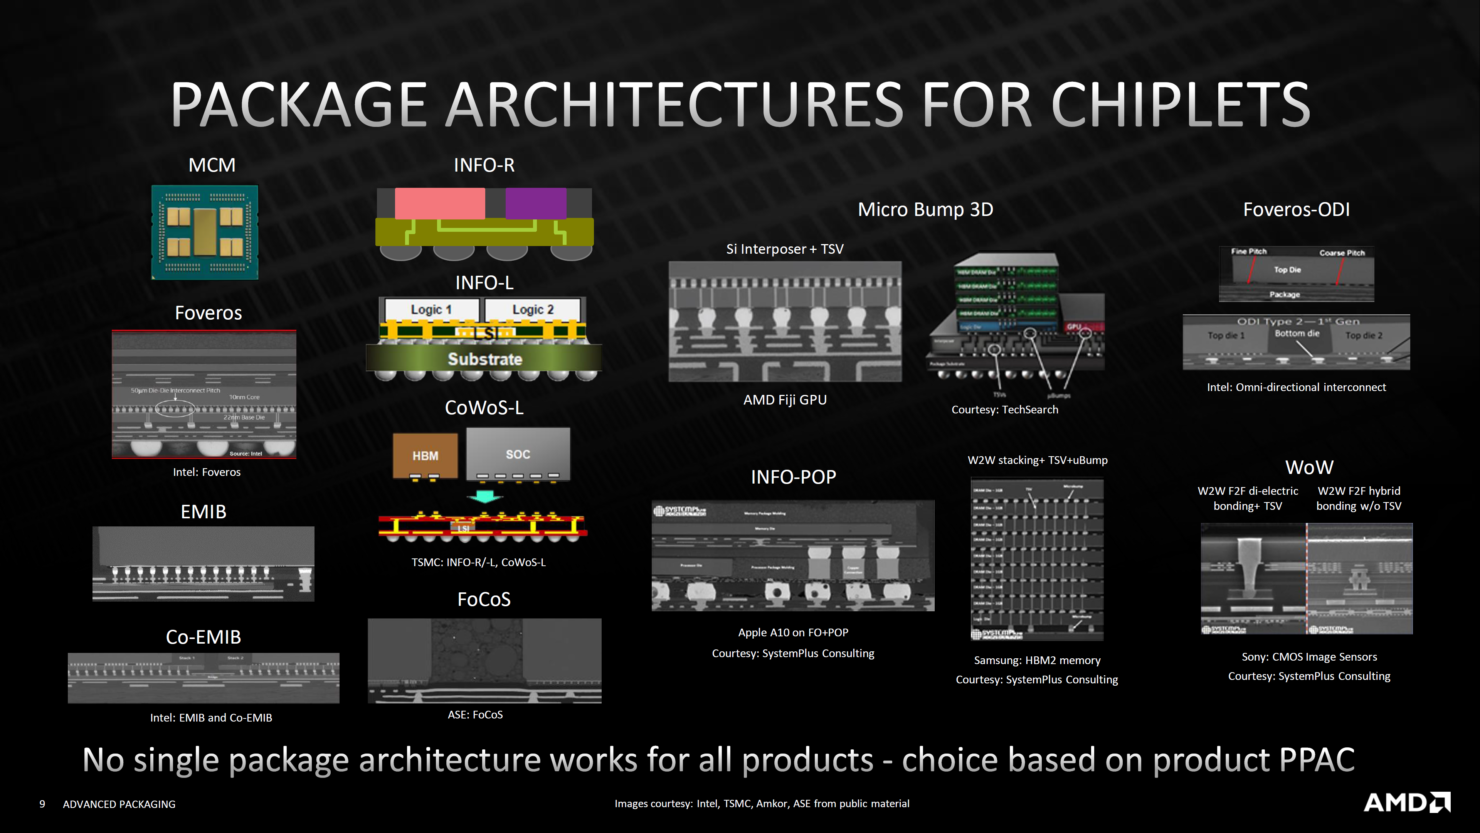 amd-advanced-3d-chiplet-packaging-3d-stacking-technologies-3d-v-cache-_8